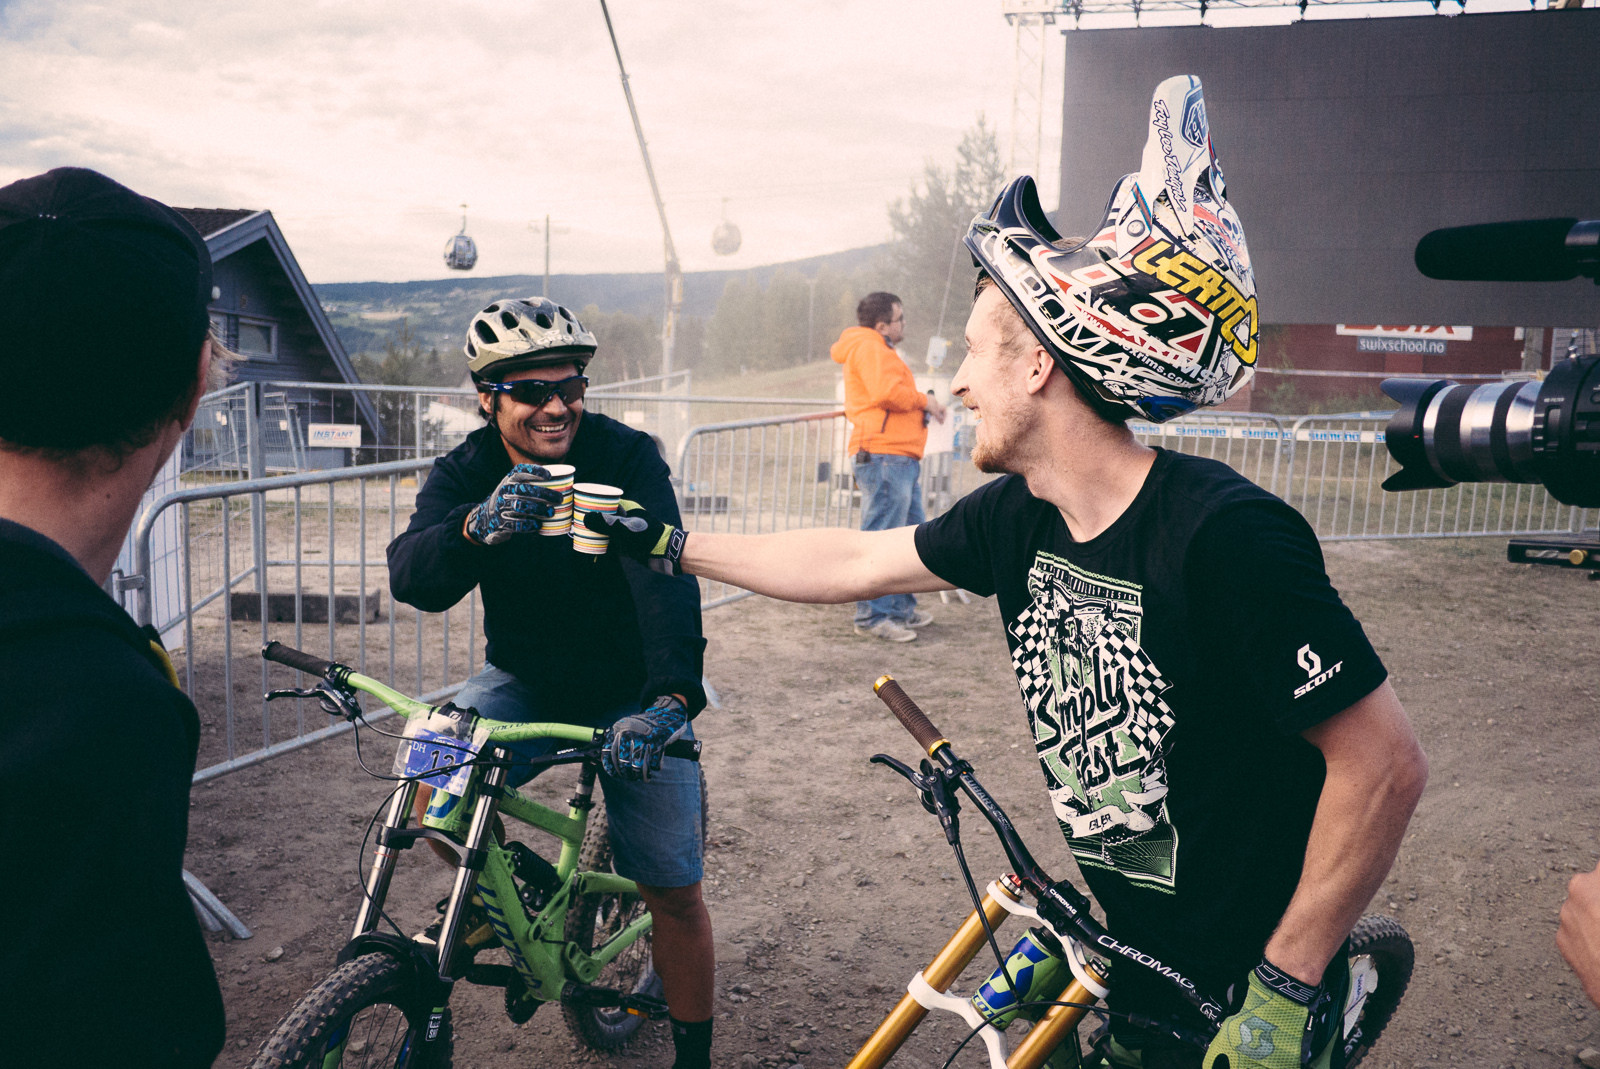 You First! - Has-Beens vs. Wannabes! Industry World Champs Race at Hafjell - Mountain Biking Pictures - Vital MTB